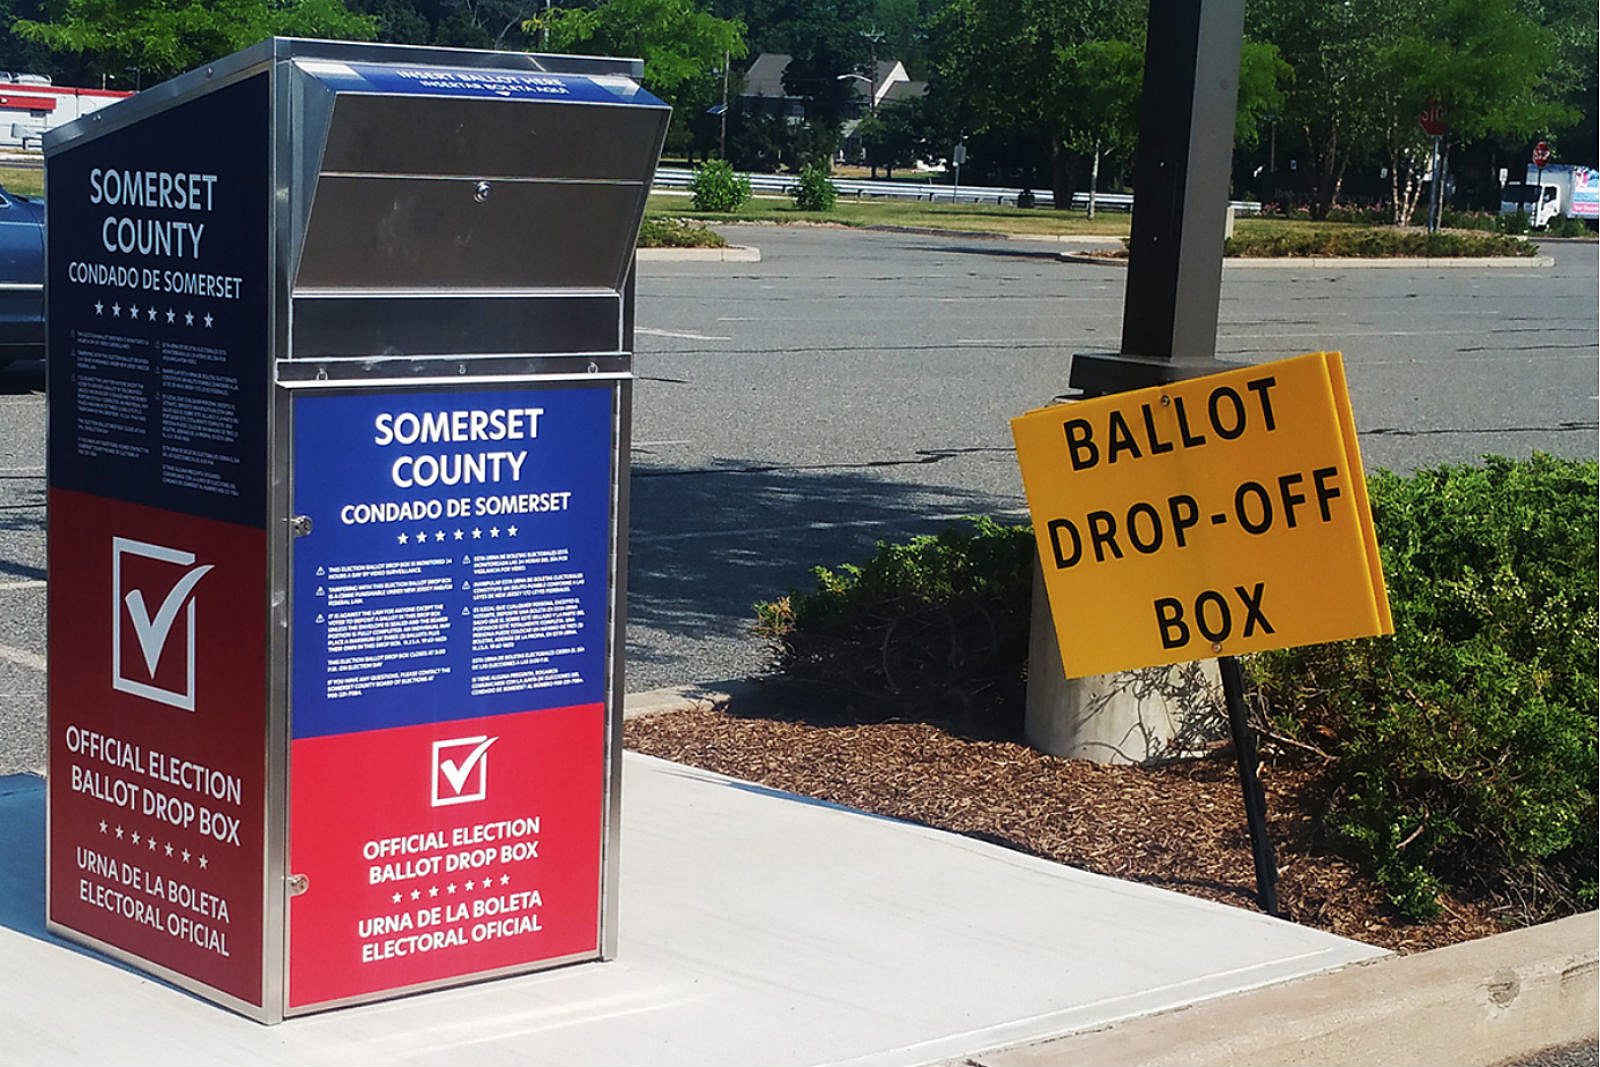 ballot drop boxes in nj for the 2020 election a complete list ballot drop boxes in nj for the 2020